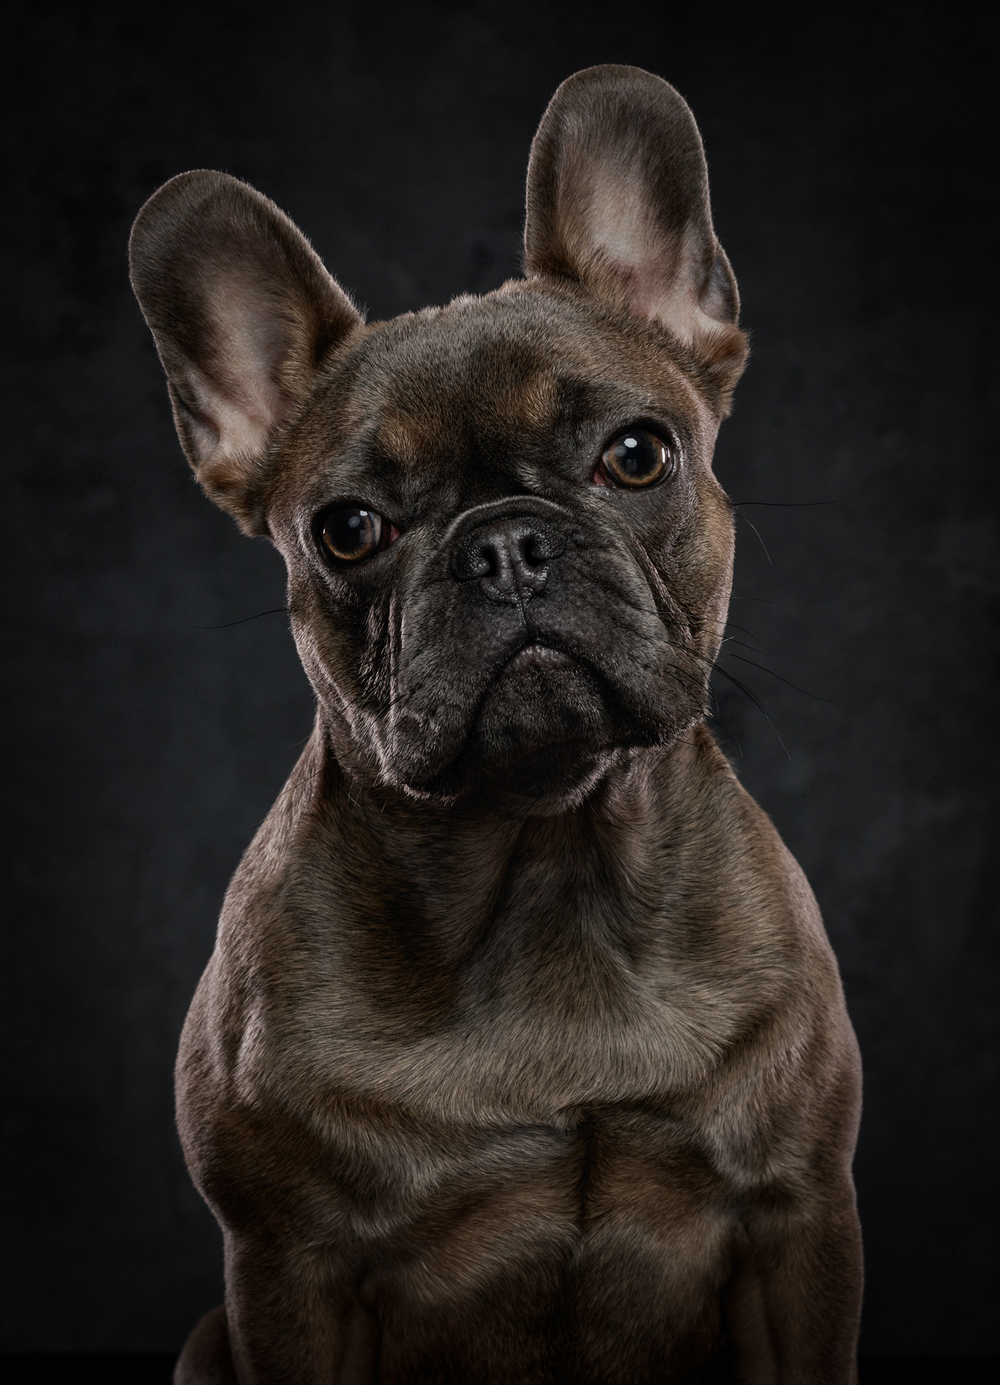 dog-photography-klaus-dyba-1.jpg